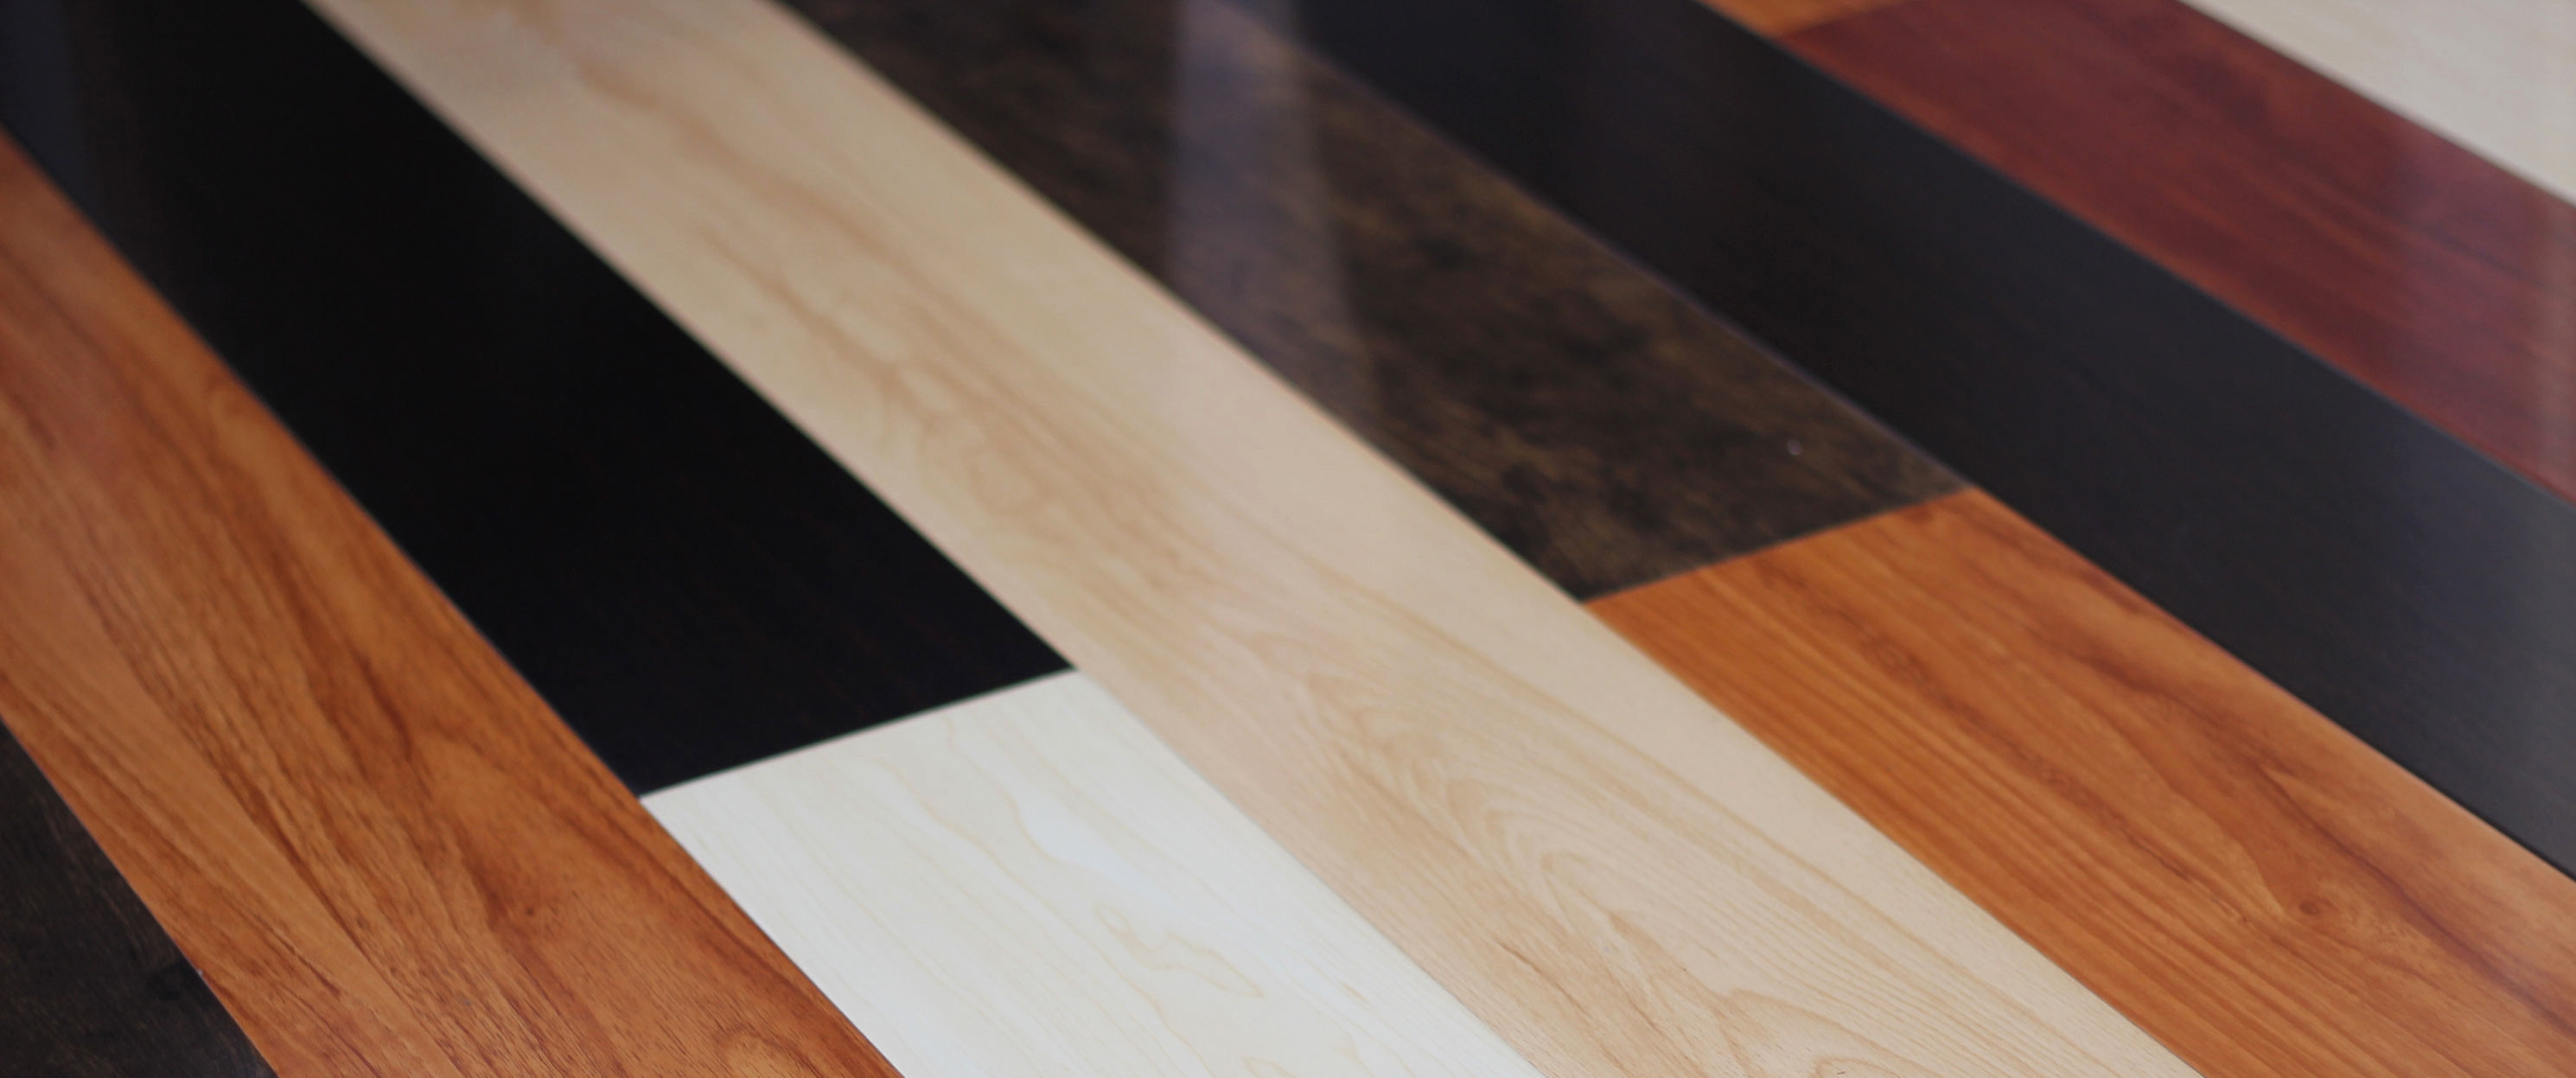 what to clean prefinished hardwood floors with of hardwood flooring deals level 2 prefinished hardwood natural floor within hardwood flooring deals where to buy hardwood flooring inspirational 0d grace place barnegat